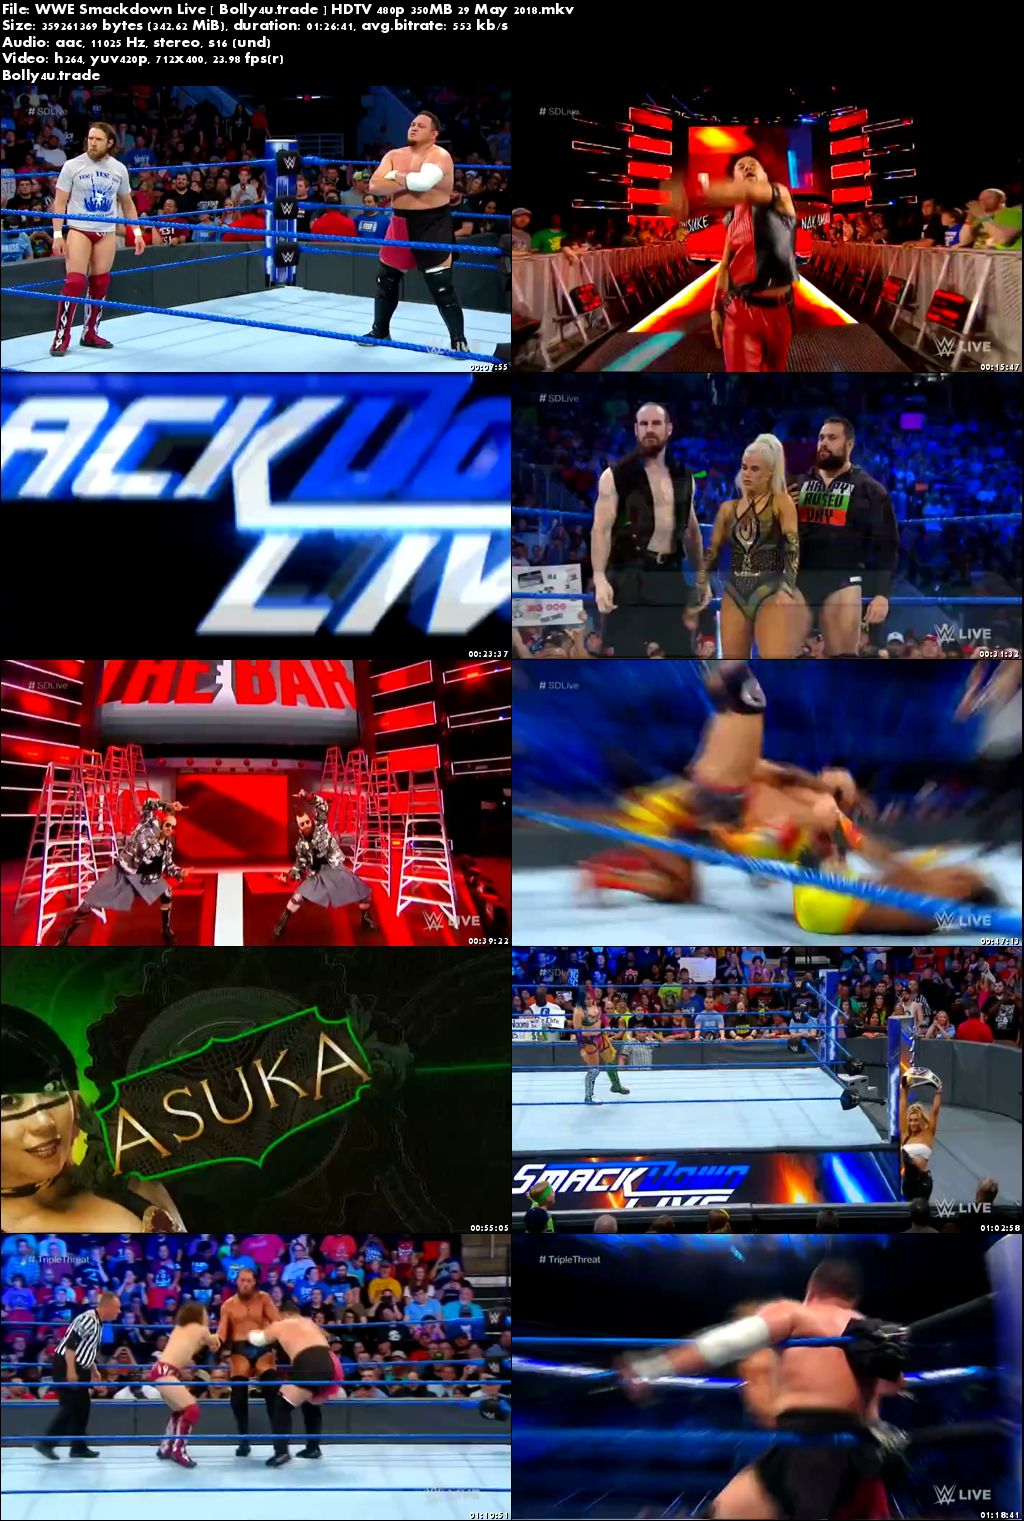 WWE Smackdown Live HDTV 480p 350MB 29 May 2018 Download